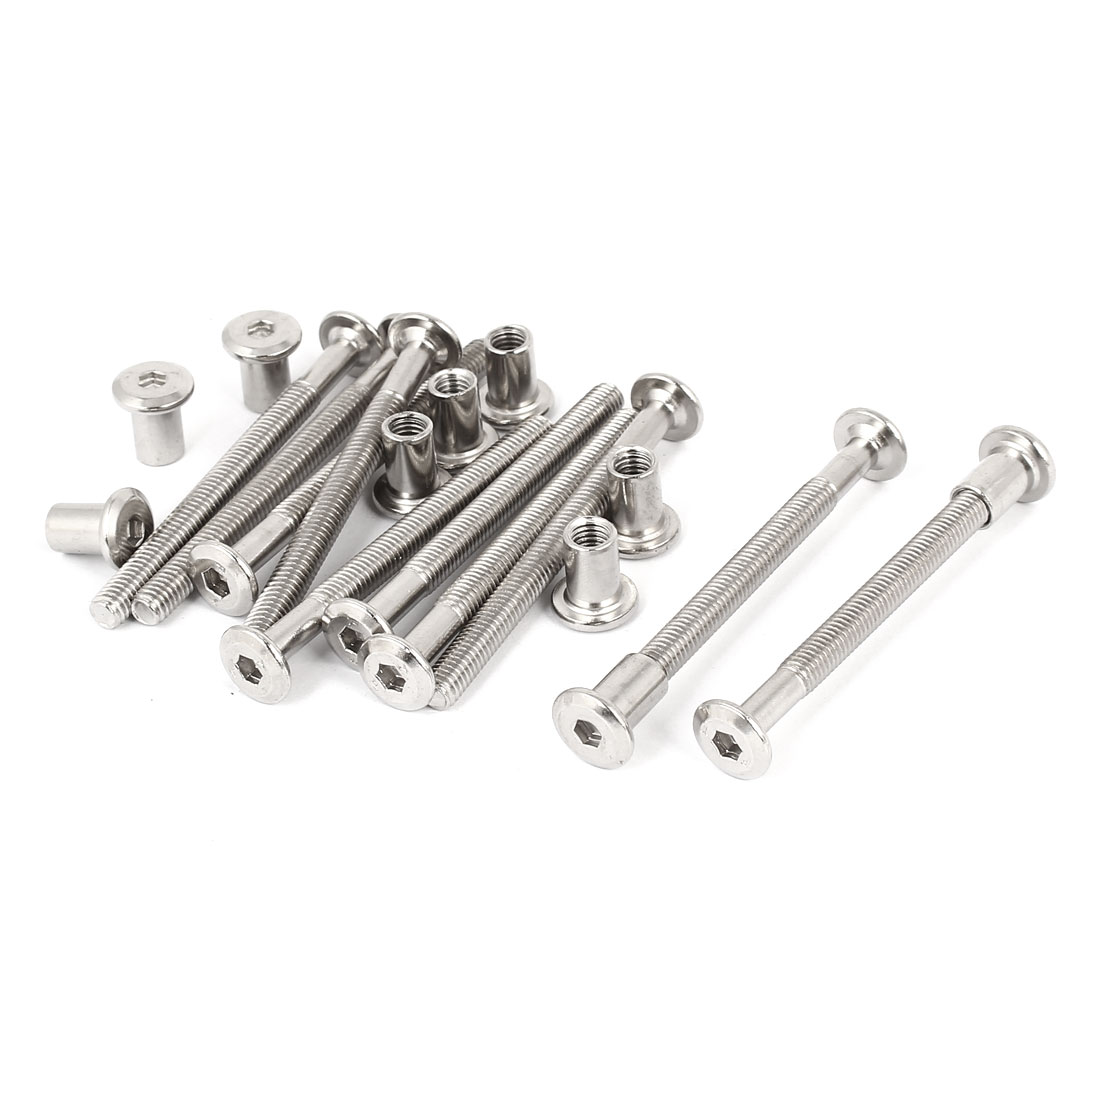 M6 x 70mm Hex Socket Head Barrel Nut Countersunk Screw Bolt Fasteners 10 Sets